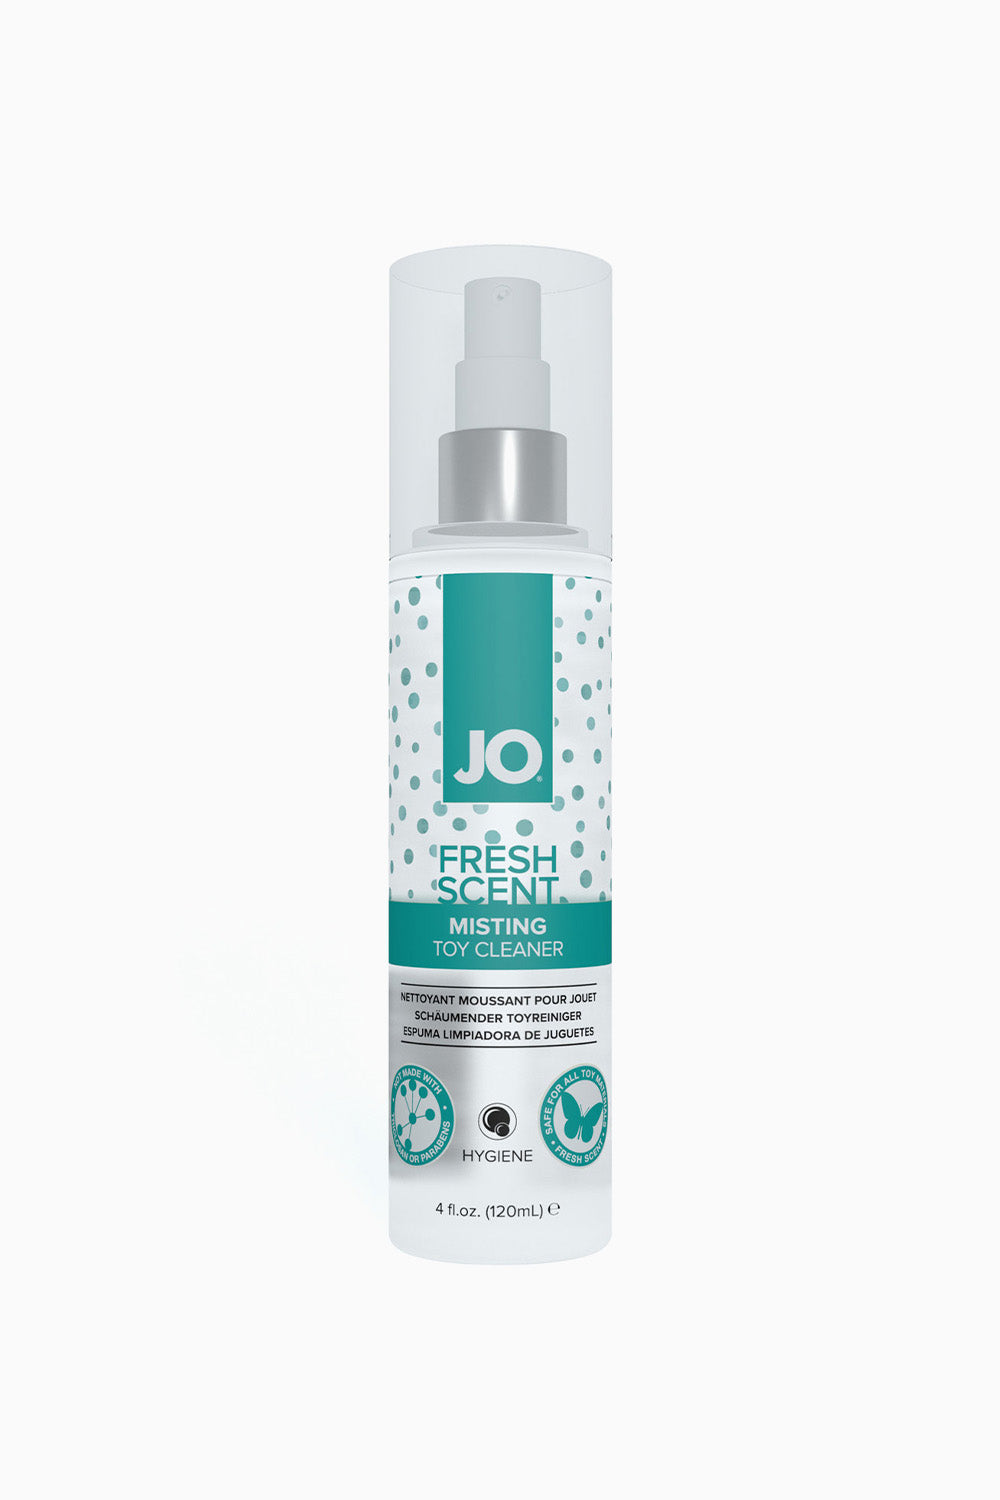 System JO Misting Toy Cleaner Fresh Scent Free Hygiene 120 ml